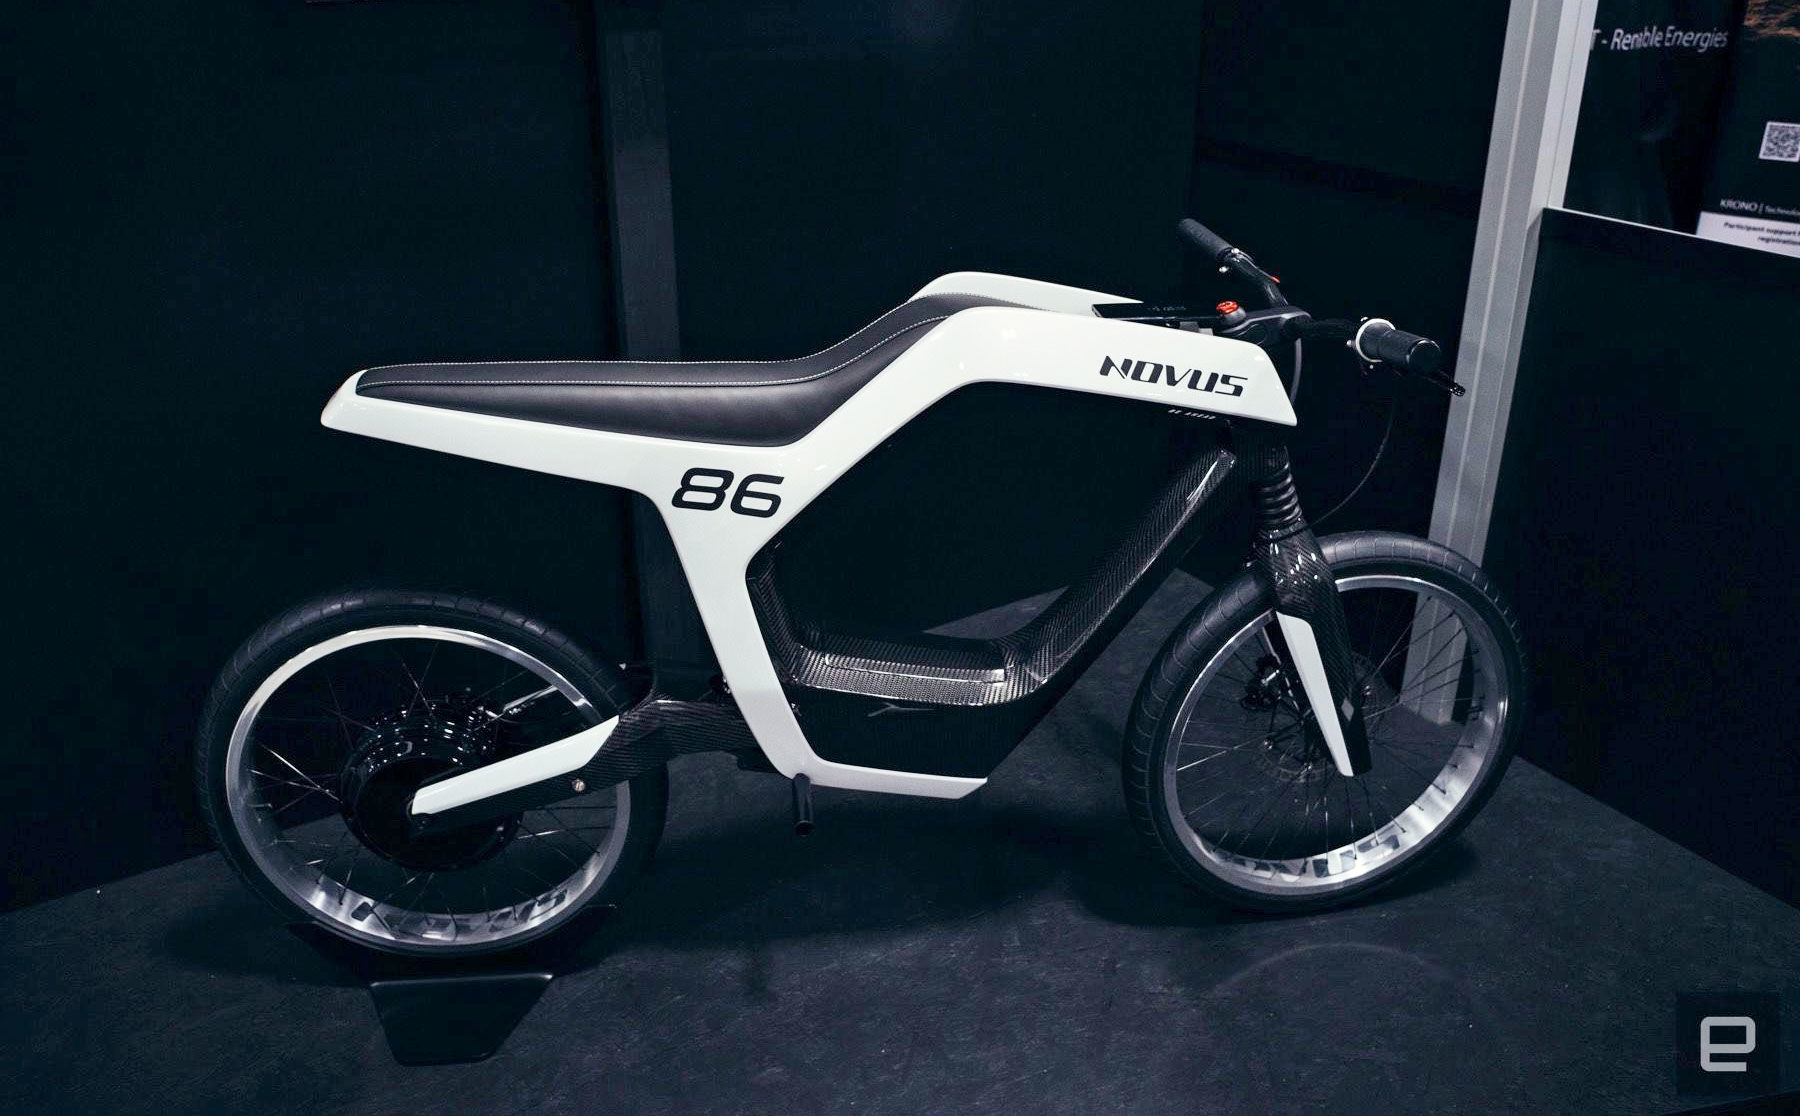 Novus' $35,000 electric motorcycle oozes sinister style | DeviceDaily.com